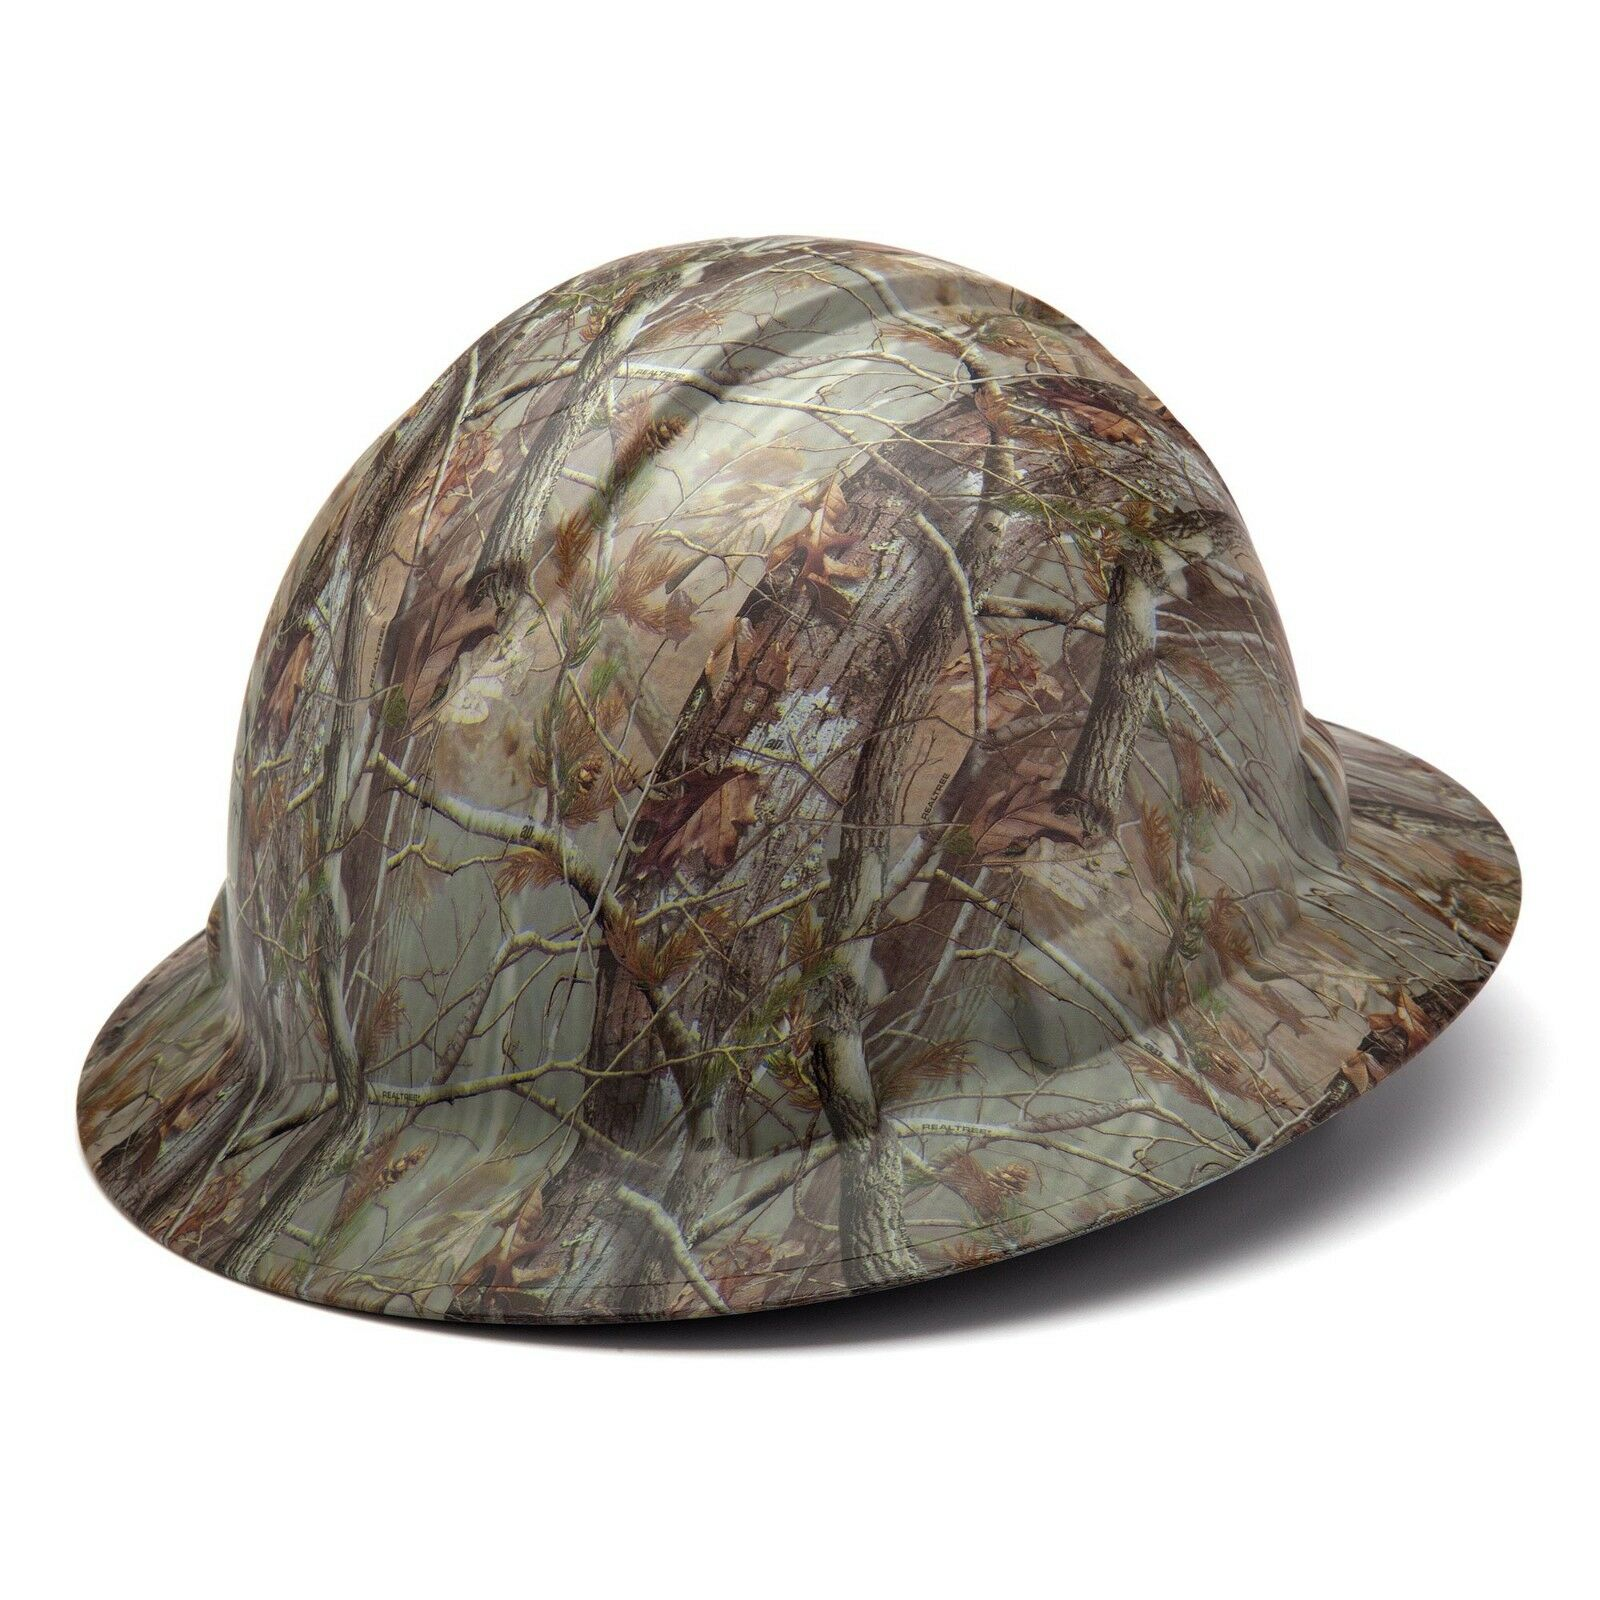 Pyramex HP54119 Ridgeline Matte CAMO Full Brim Hard Hat W/4 Pt. Ratchet Susp Business & Industrial